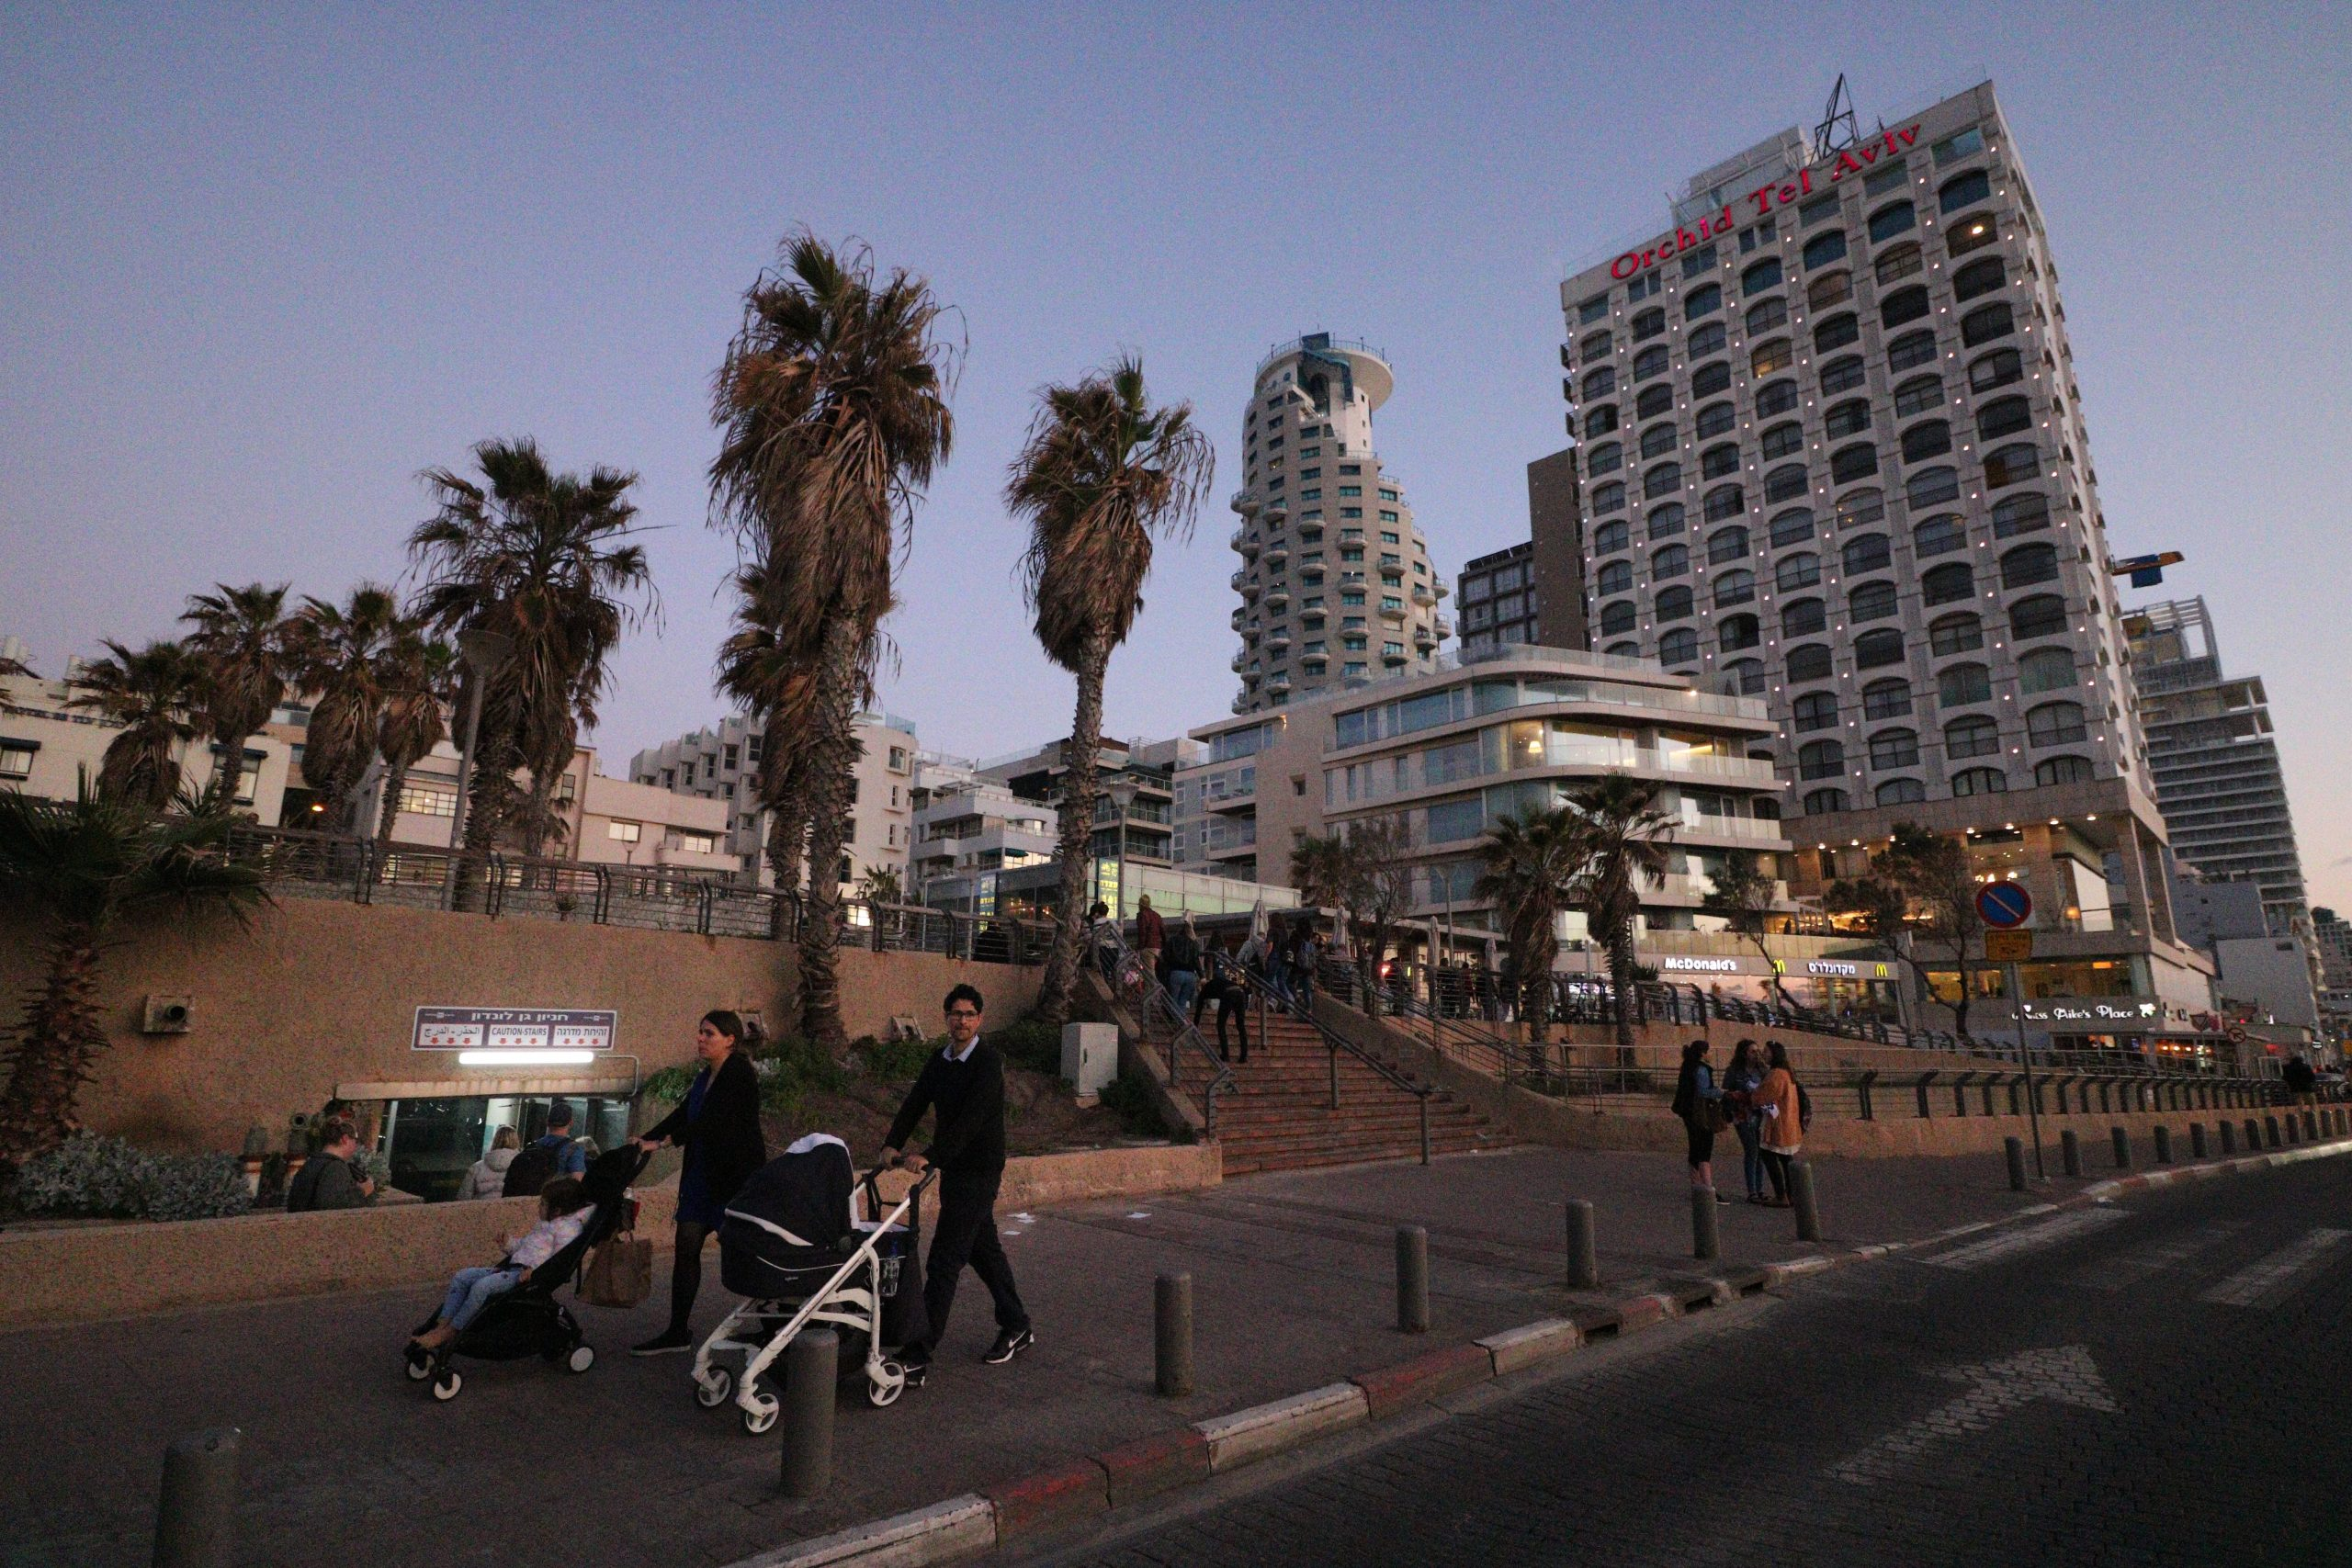 Tel Aviv, the City that Never Sleeps